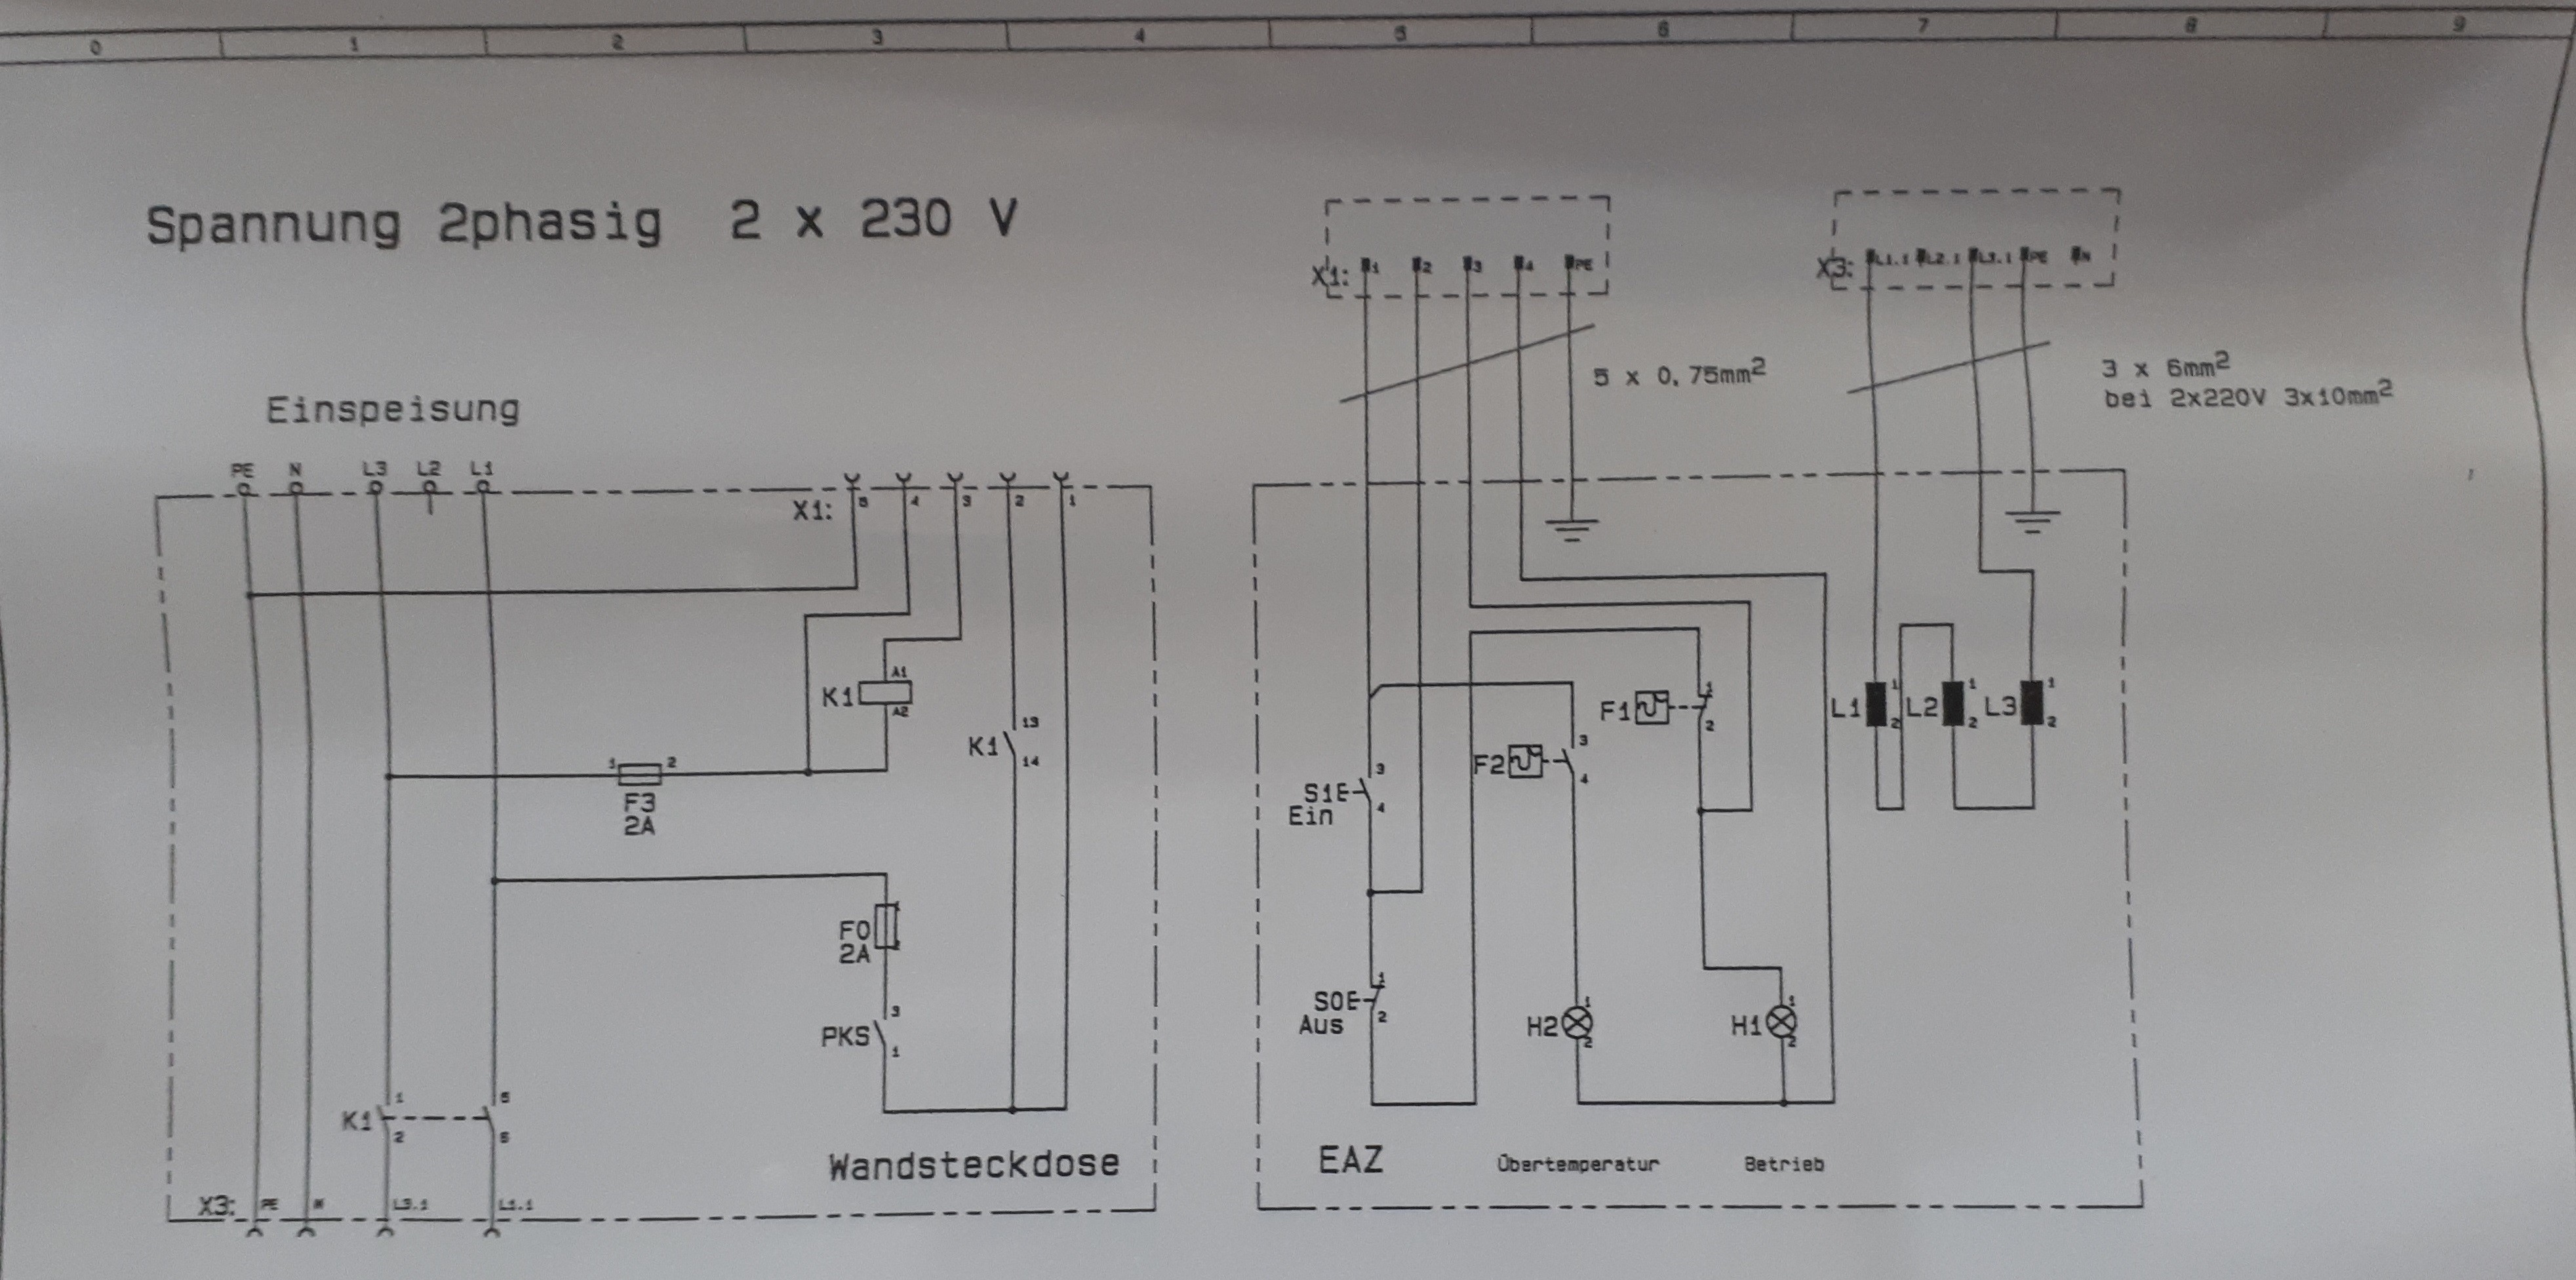 Power Converter 6345 Wiring Diagram 3 Phase 380 V to 3 Phase 230 V Electrical Engineering Of Power Converter 6345 Wiring Diagram